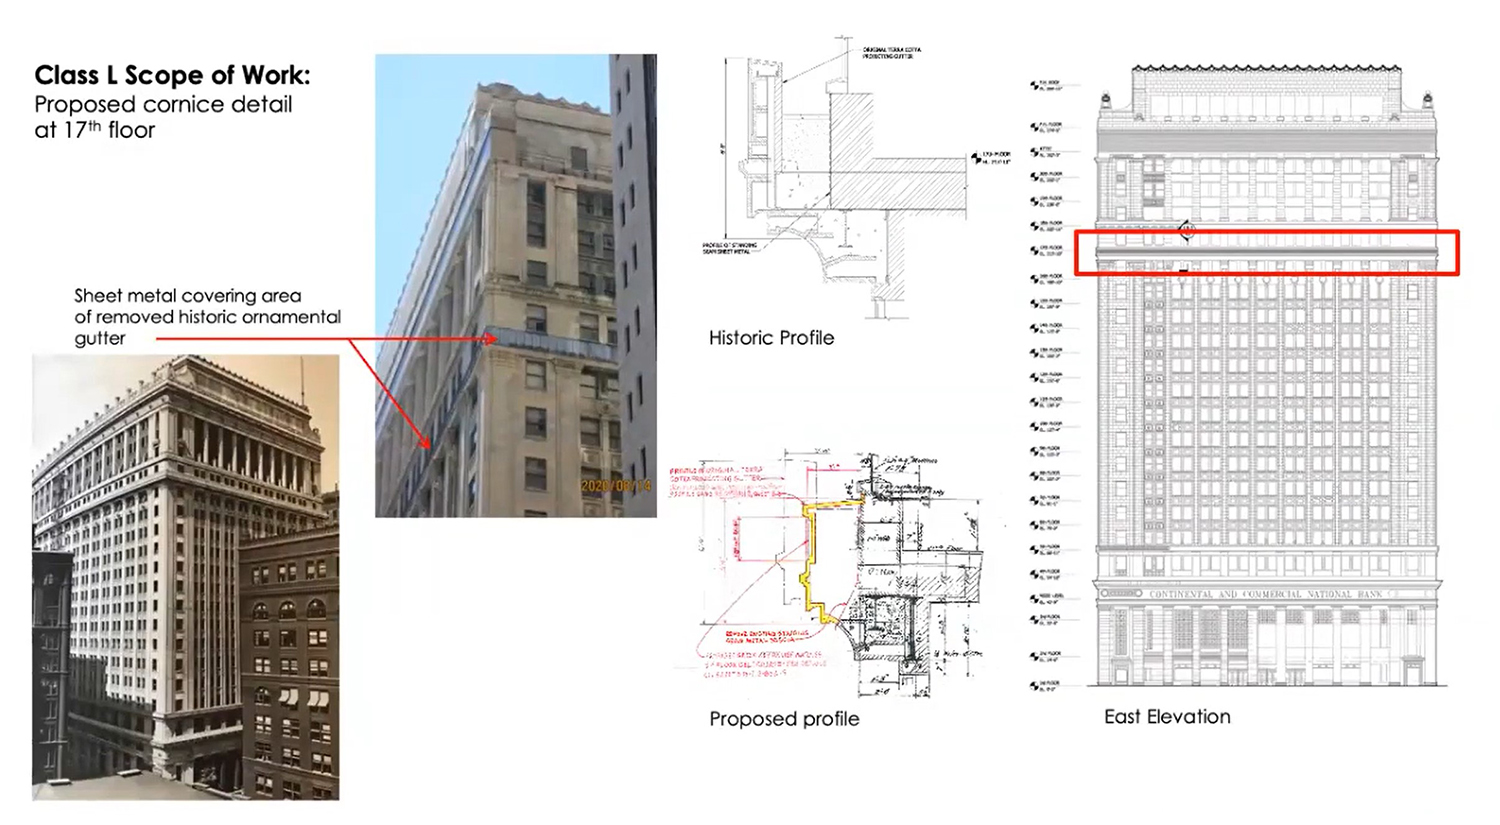 Cornice Scope of Work for 208 S LaSalle Street. Drawings by The Prime Group